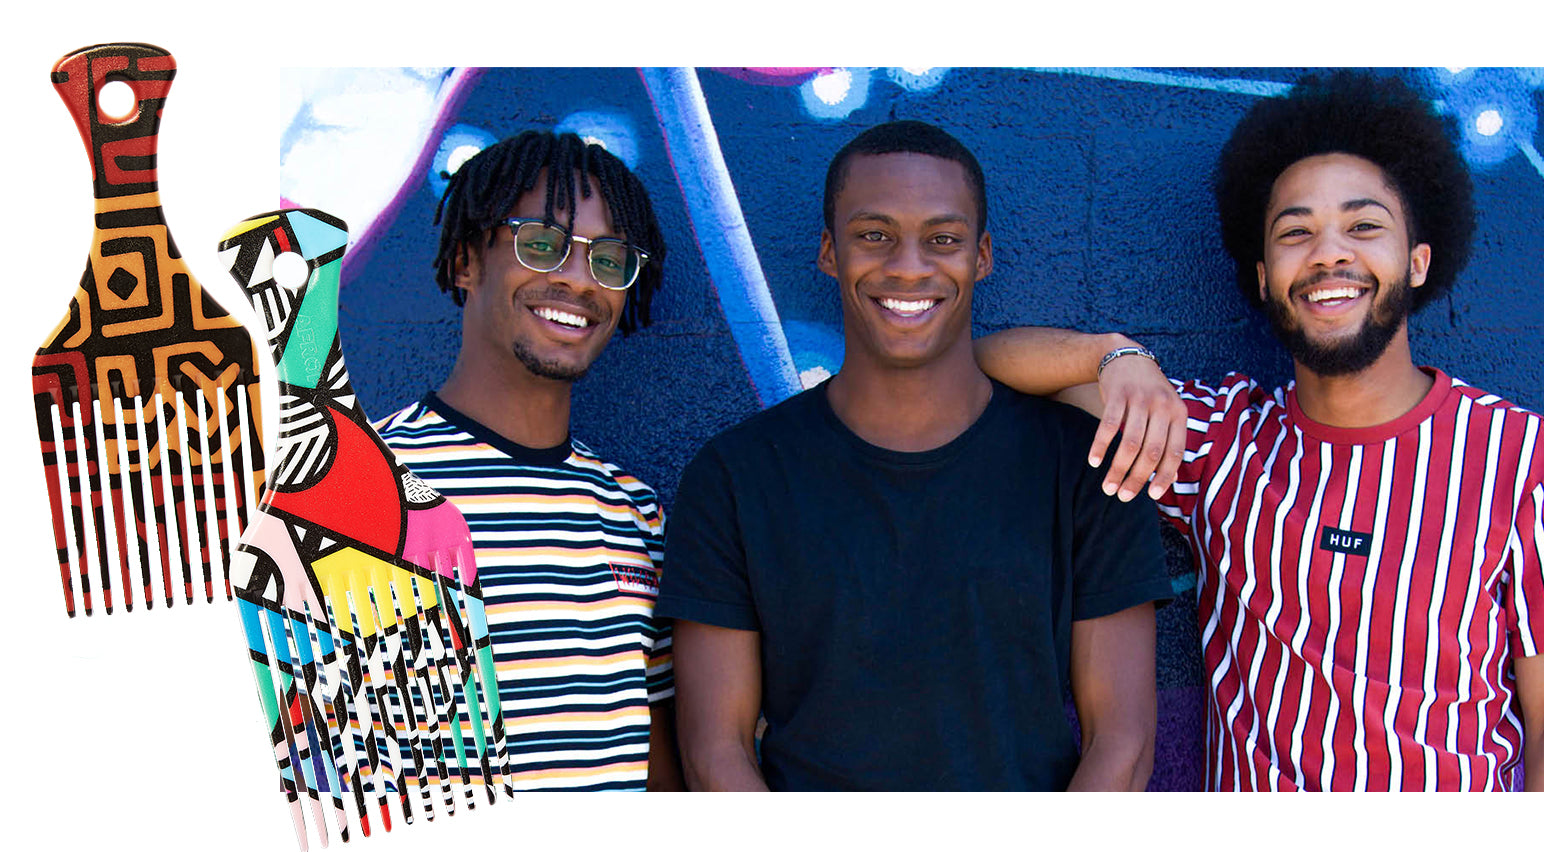 Gemille Walker, Shaquille Walker, and Zarrius Walker, founders of AfroPick